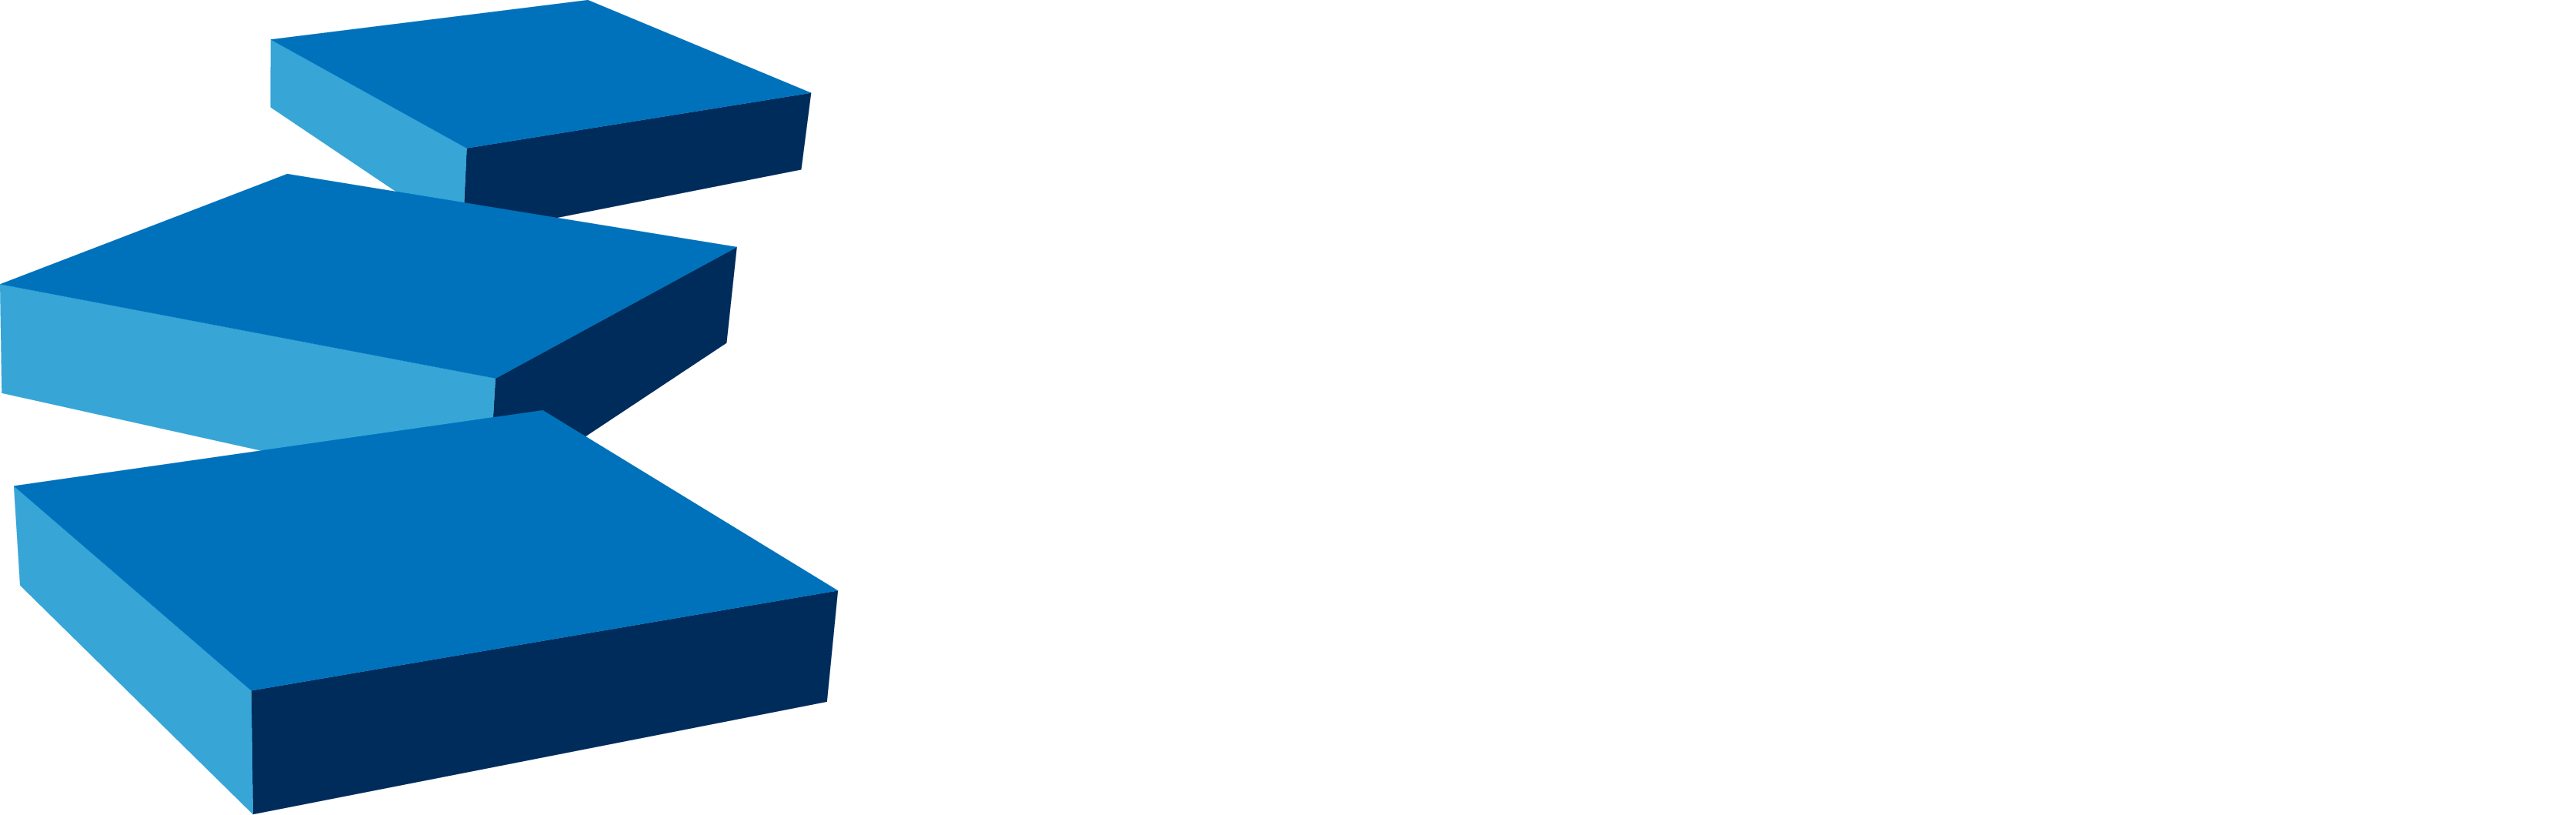 The Pathway to Mastery